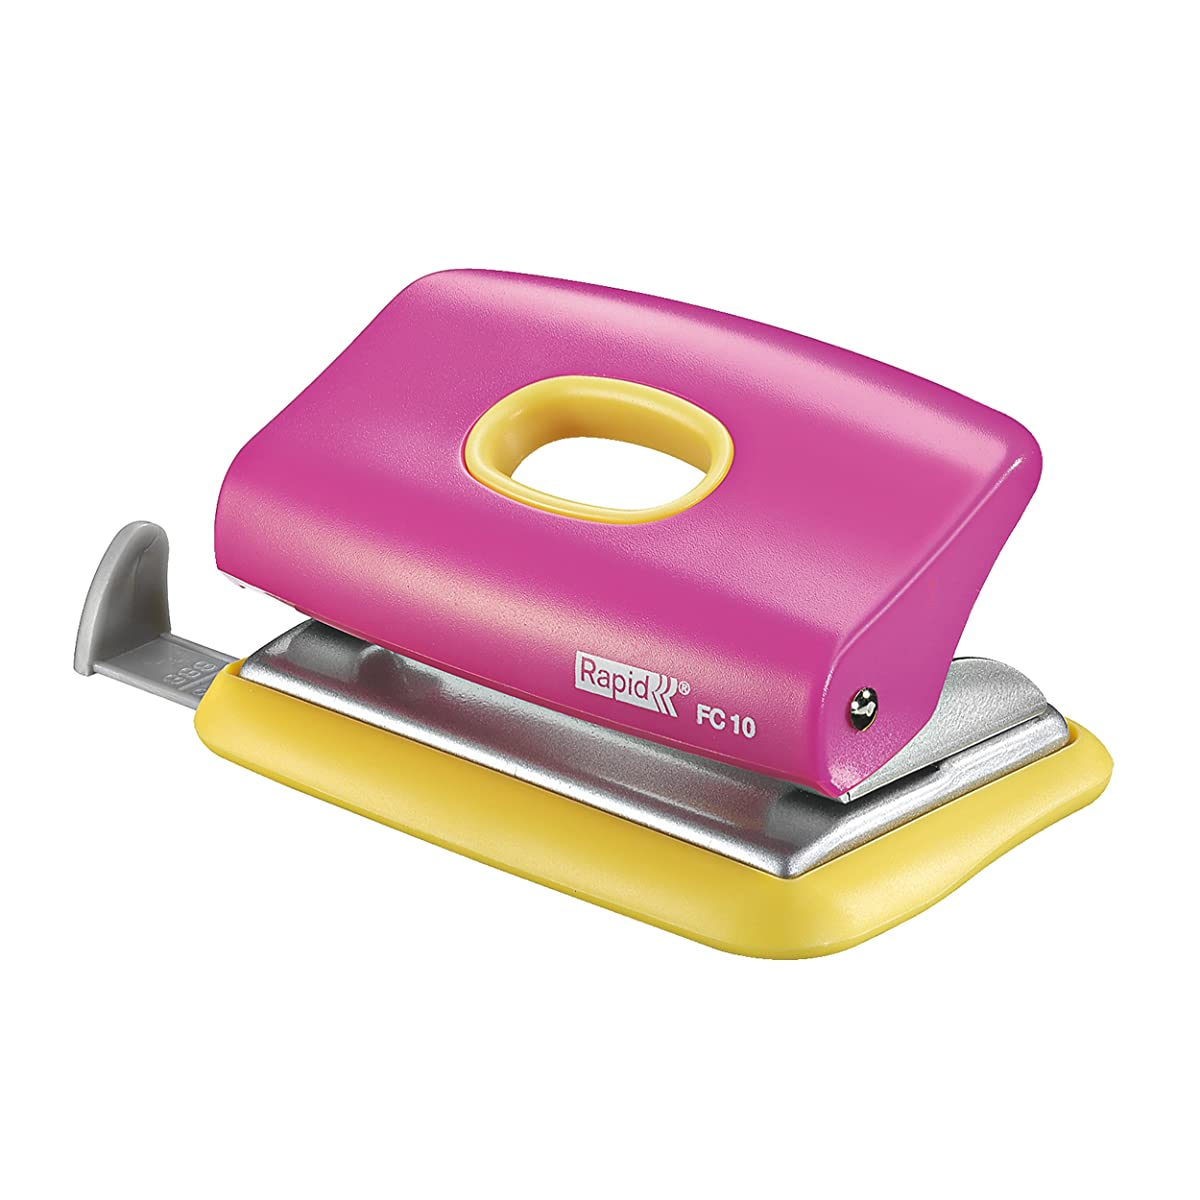 Rapid FC10 Hole Punch - Pink/Yellow